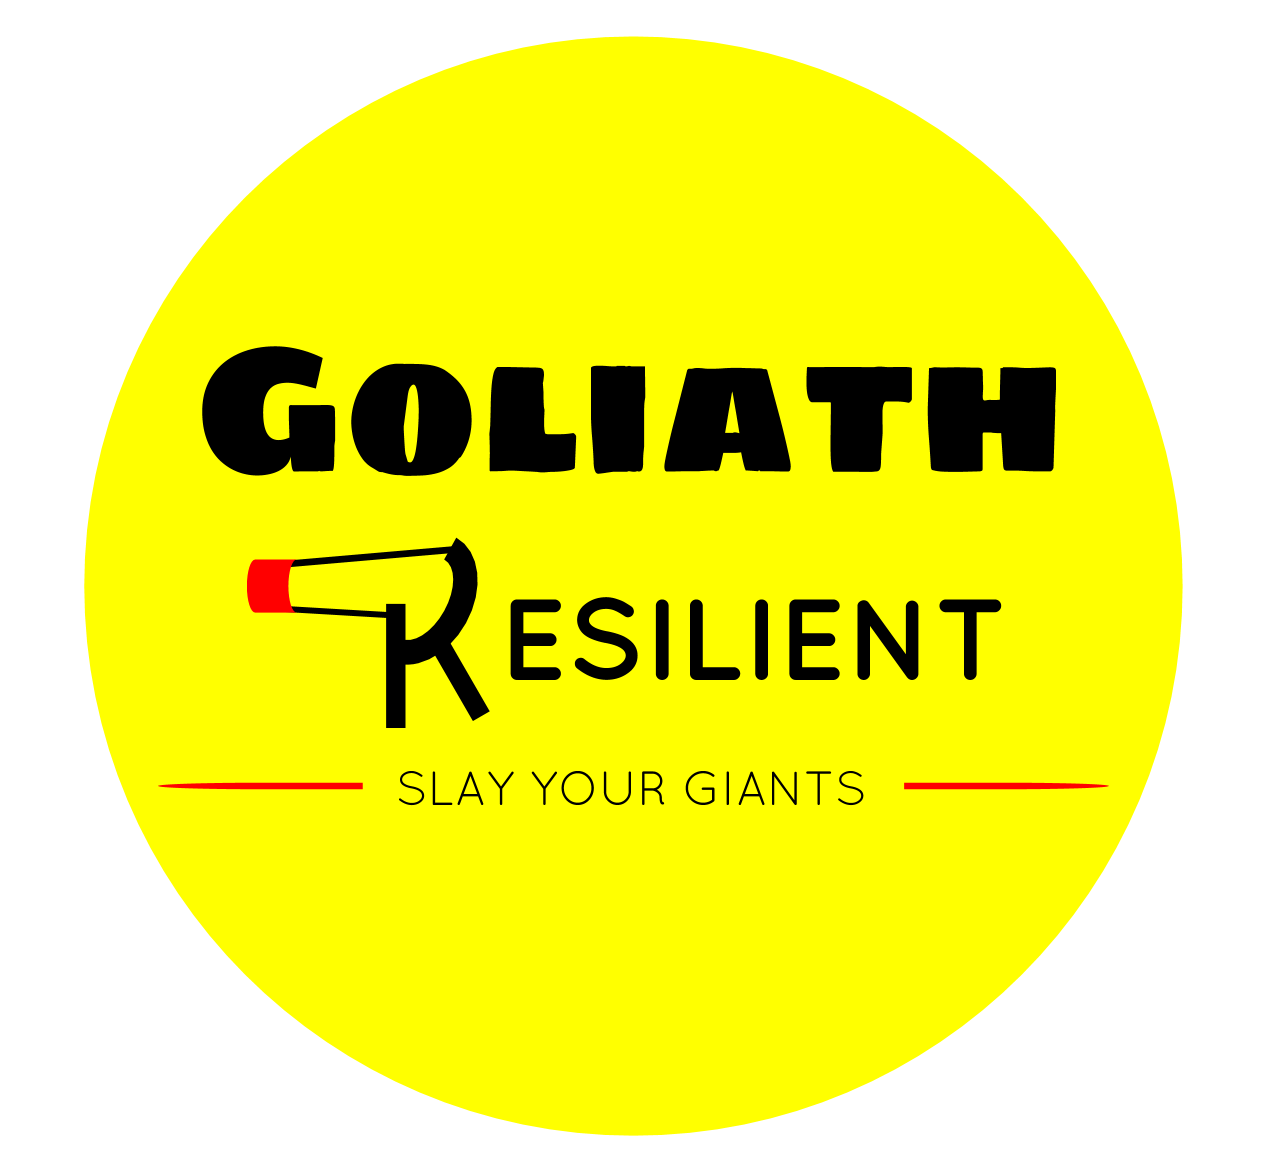 Goliath Resilient